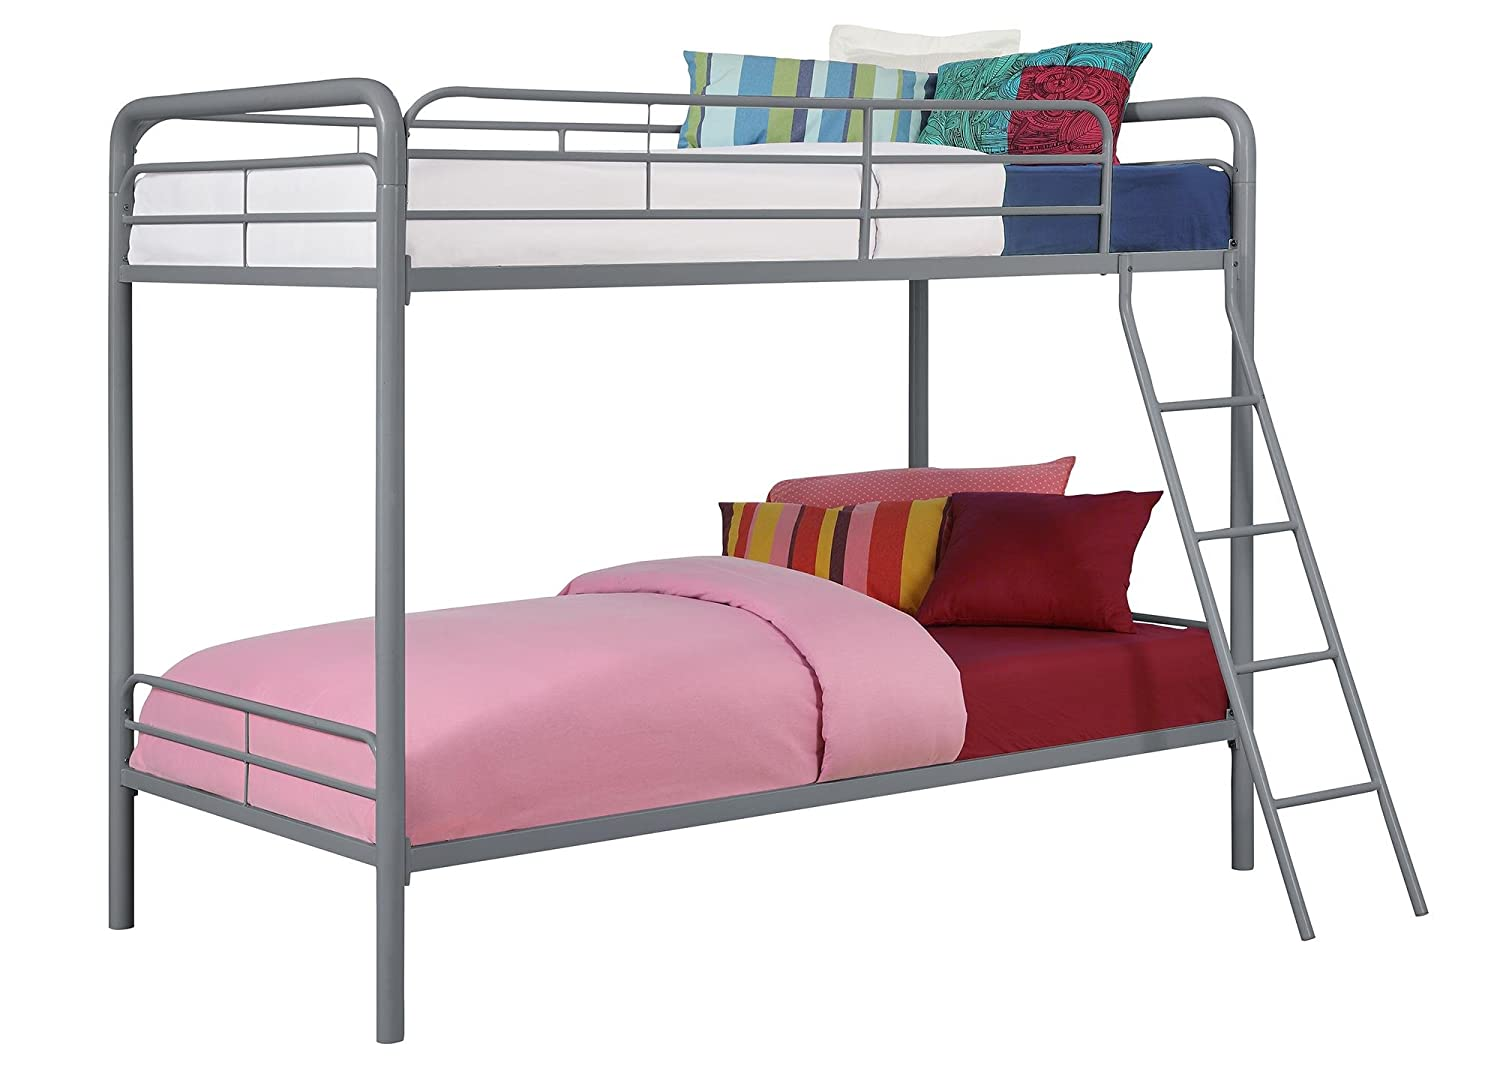 amazoncom dhp bunk bed with metal frame and ladder spacesaving design silver kitchen u0026 dining